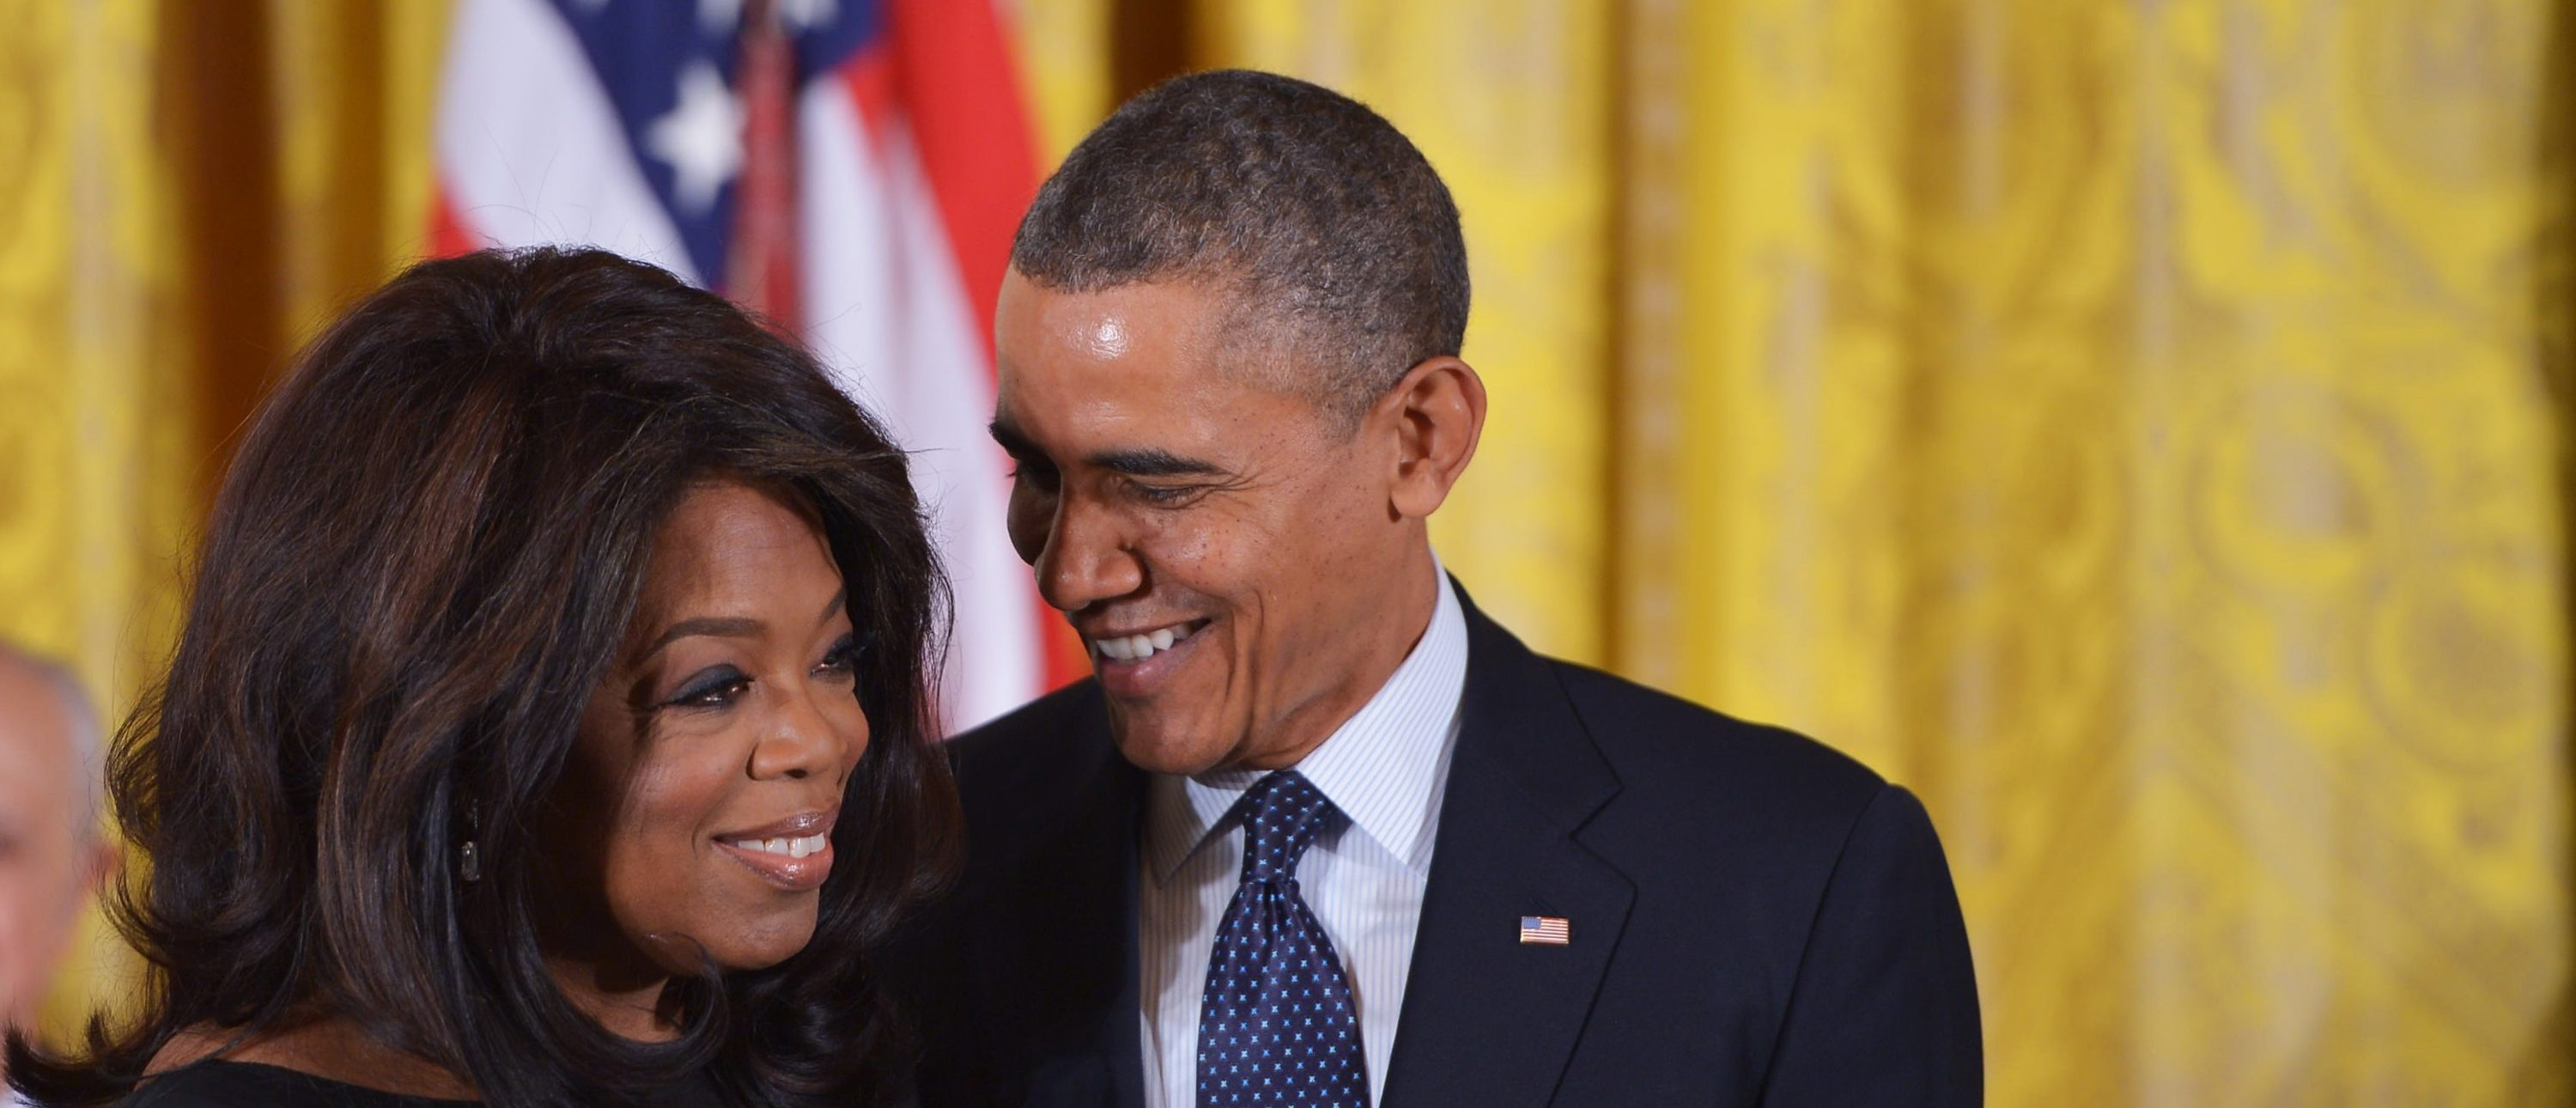 US President Barack Obama chats with broadcast journalist Oprah Winfrey after presenting the Presidential Medal of Freedom during a ceremony in the East Room of the White House on November 20, 2013 in Washington, DC. The Medal of Freedom is the country's foremost civilian honor.  AFP PHOTO/Mandel NGAN        (Photo credit should read MANDEL NGAN/AFP/Getty Images)